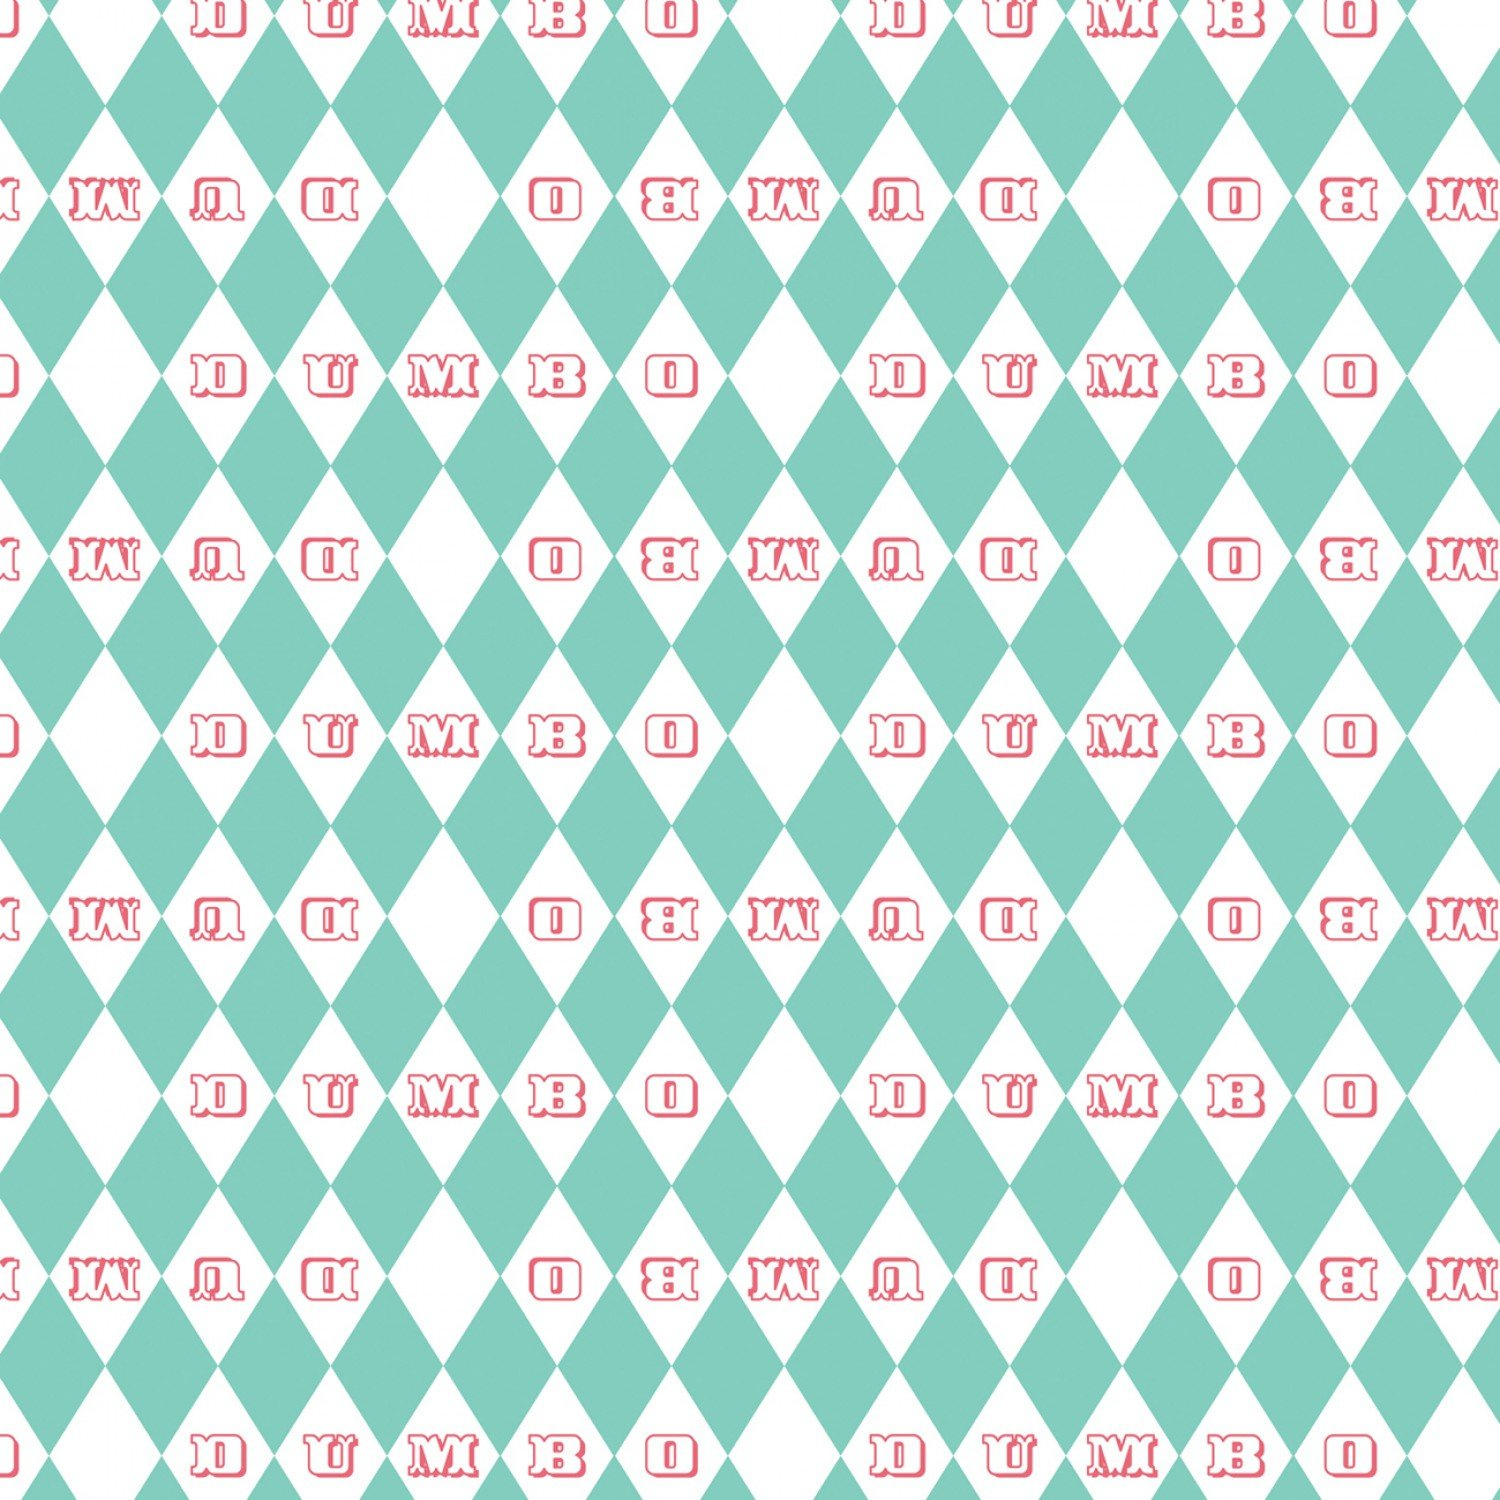 CF-Dumbo in the Circus 85160202-02 Vintage Argyle in Turquoise